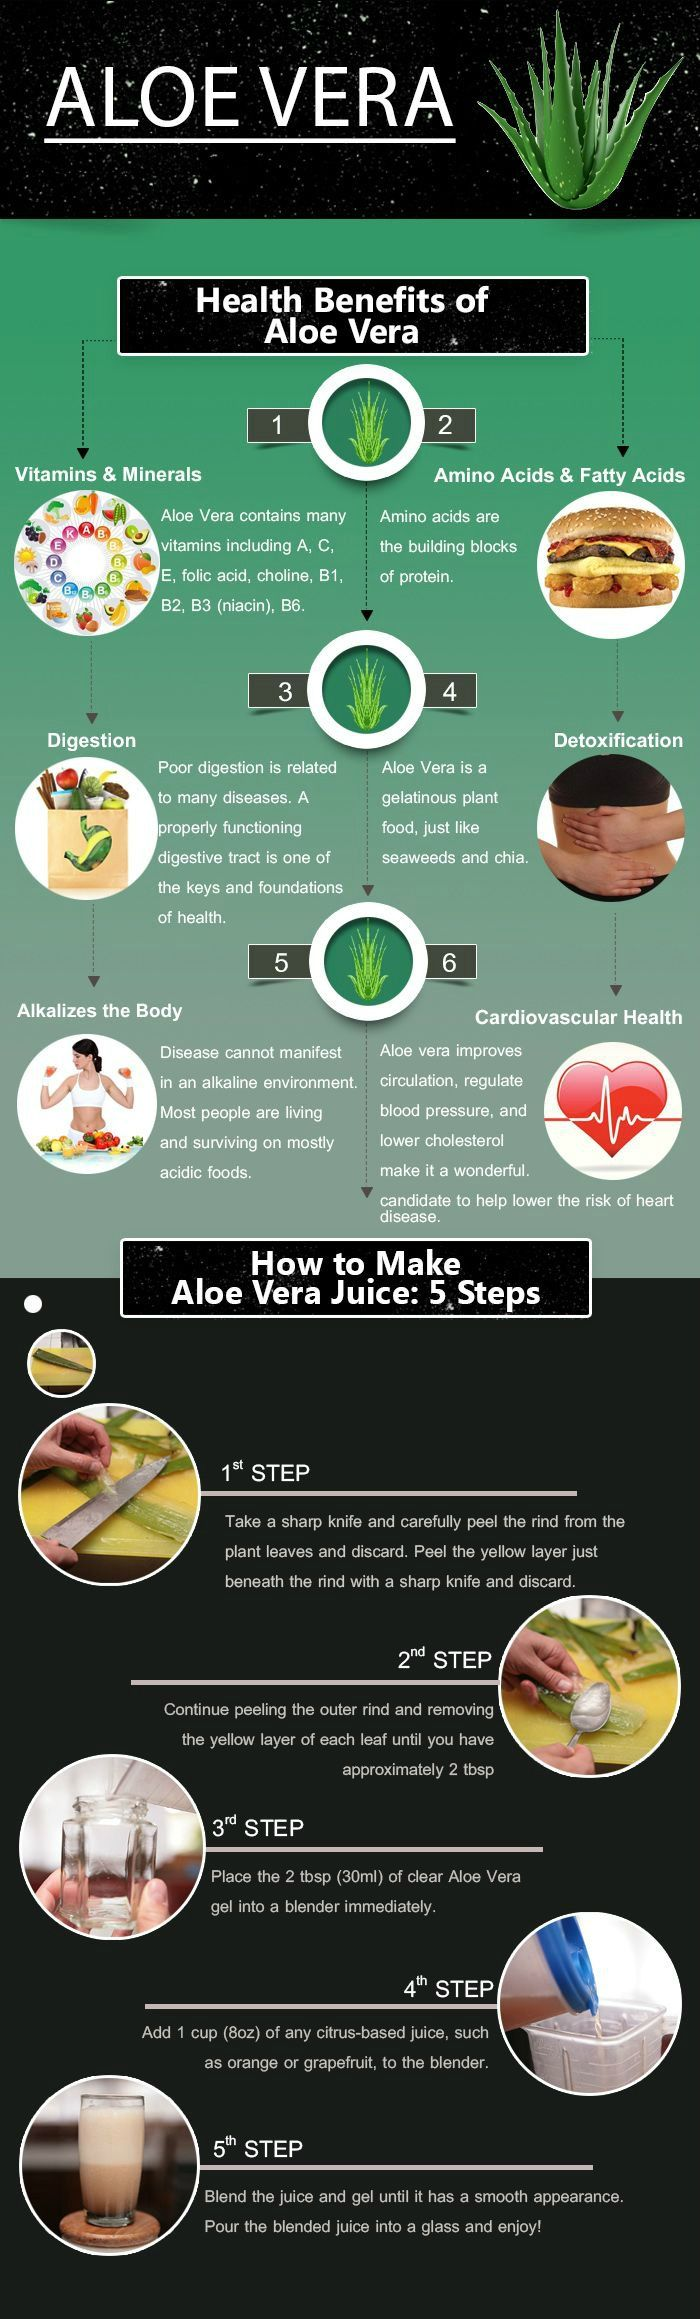 25 Amazing Benefits Of Aloe Vera For Skin, Hair And Health. Luckily you don't need to go to all the trouble of filleting your own aloe as forever living have done all the hard work for you! Our Aloe Vera drinking gel is as close as possible to the fresh gel straight from the leaf! Buy yours at www.naturalhealthwithaloe.flp.com